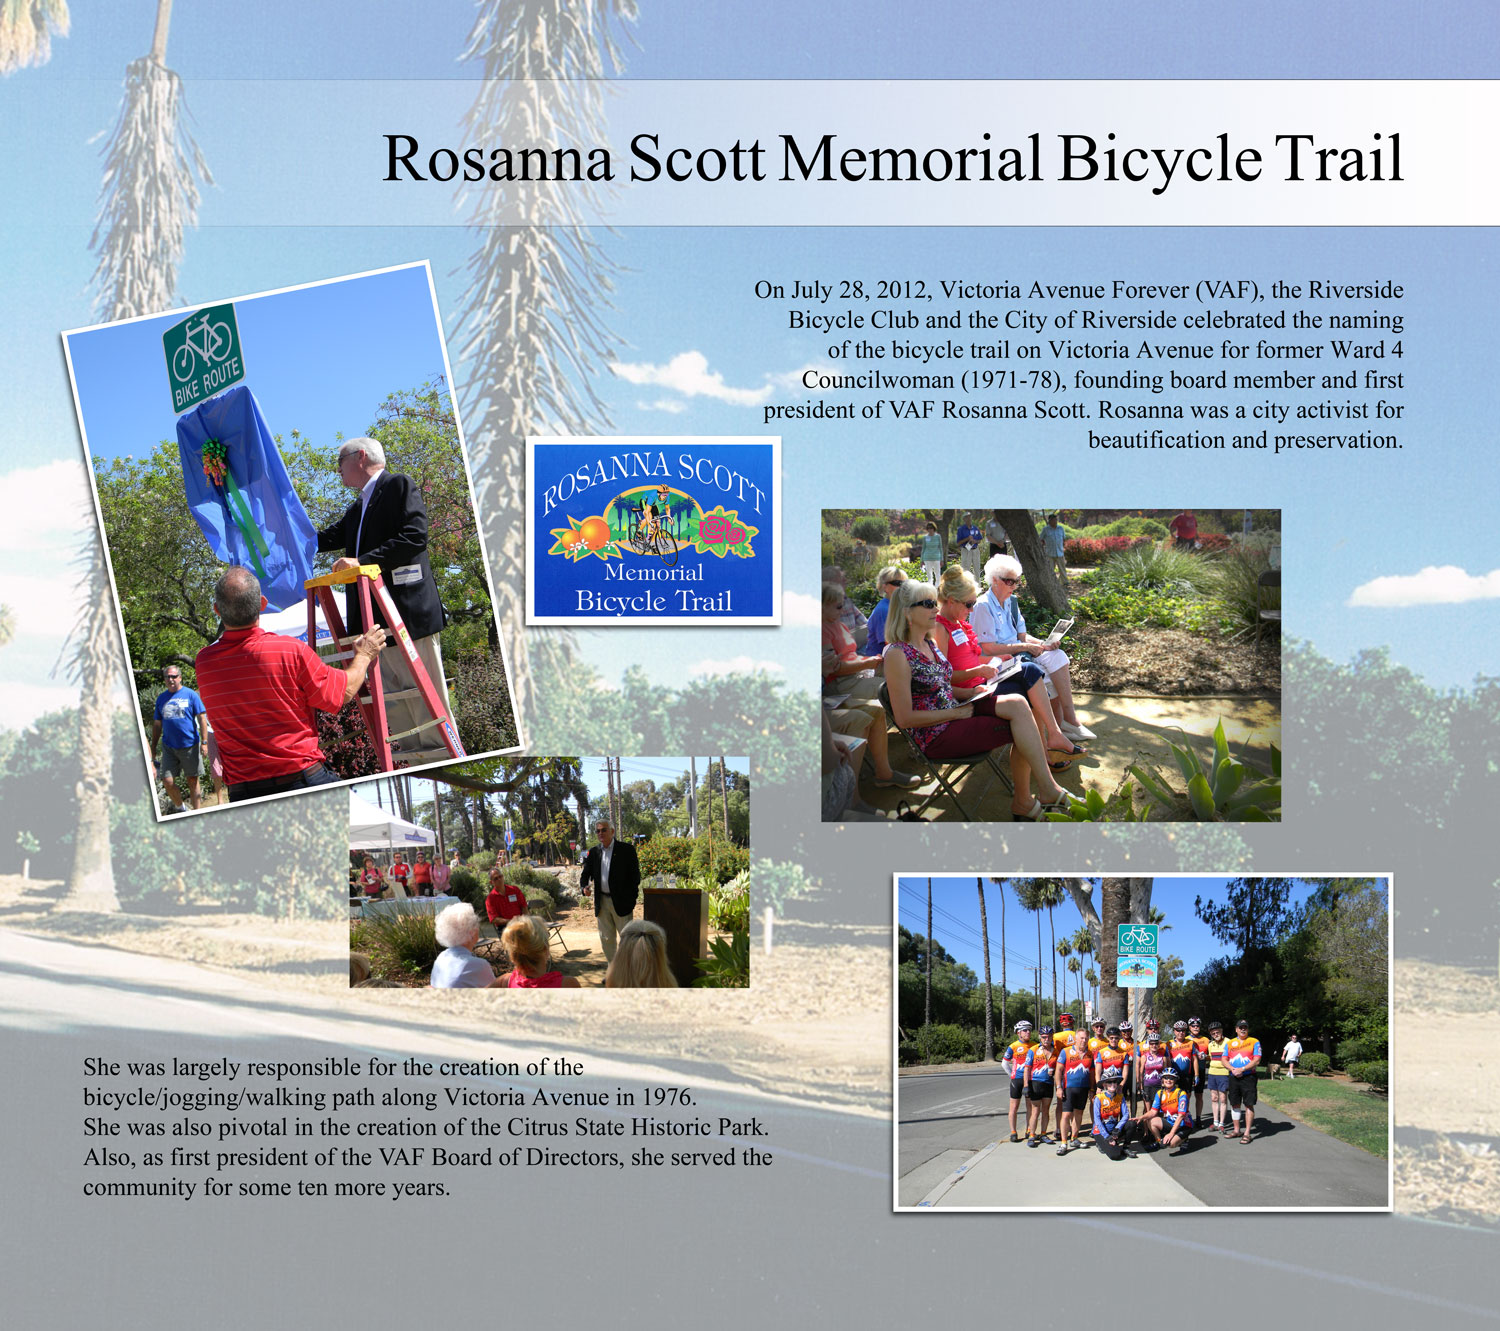 Rosanna Scott Memorial Bicycle Trail